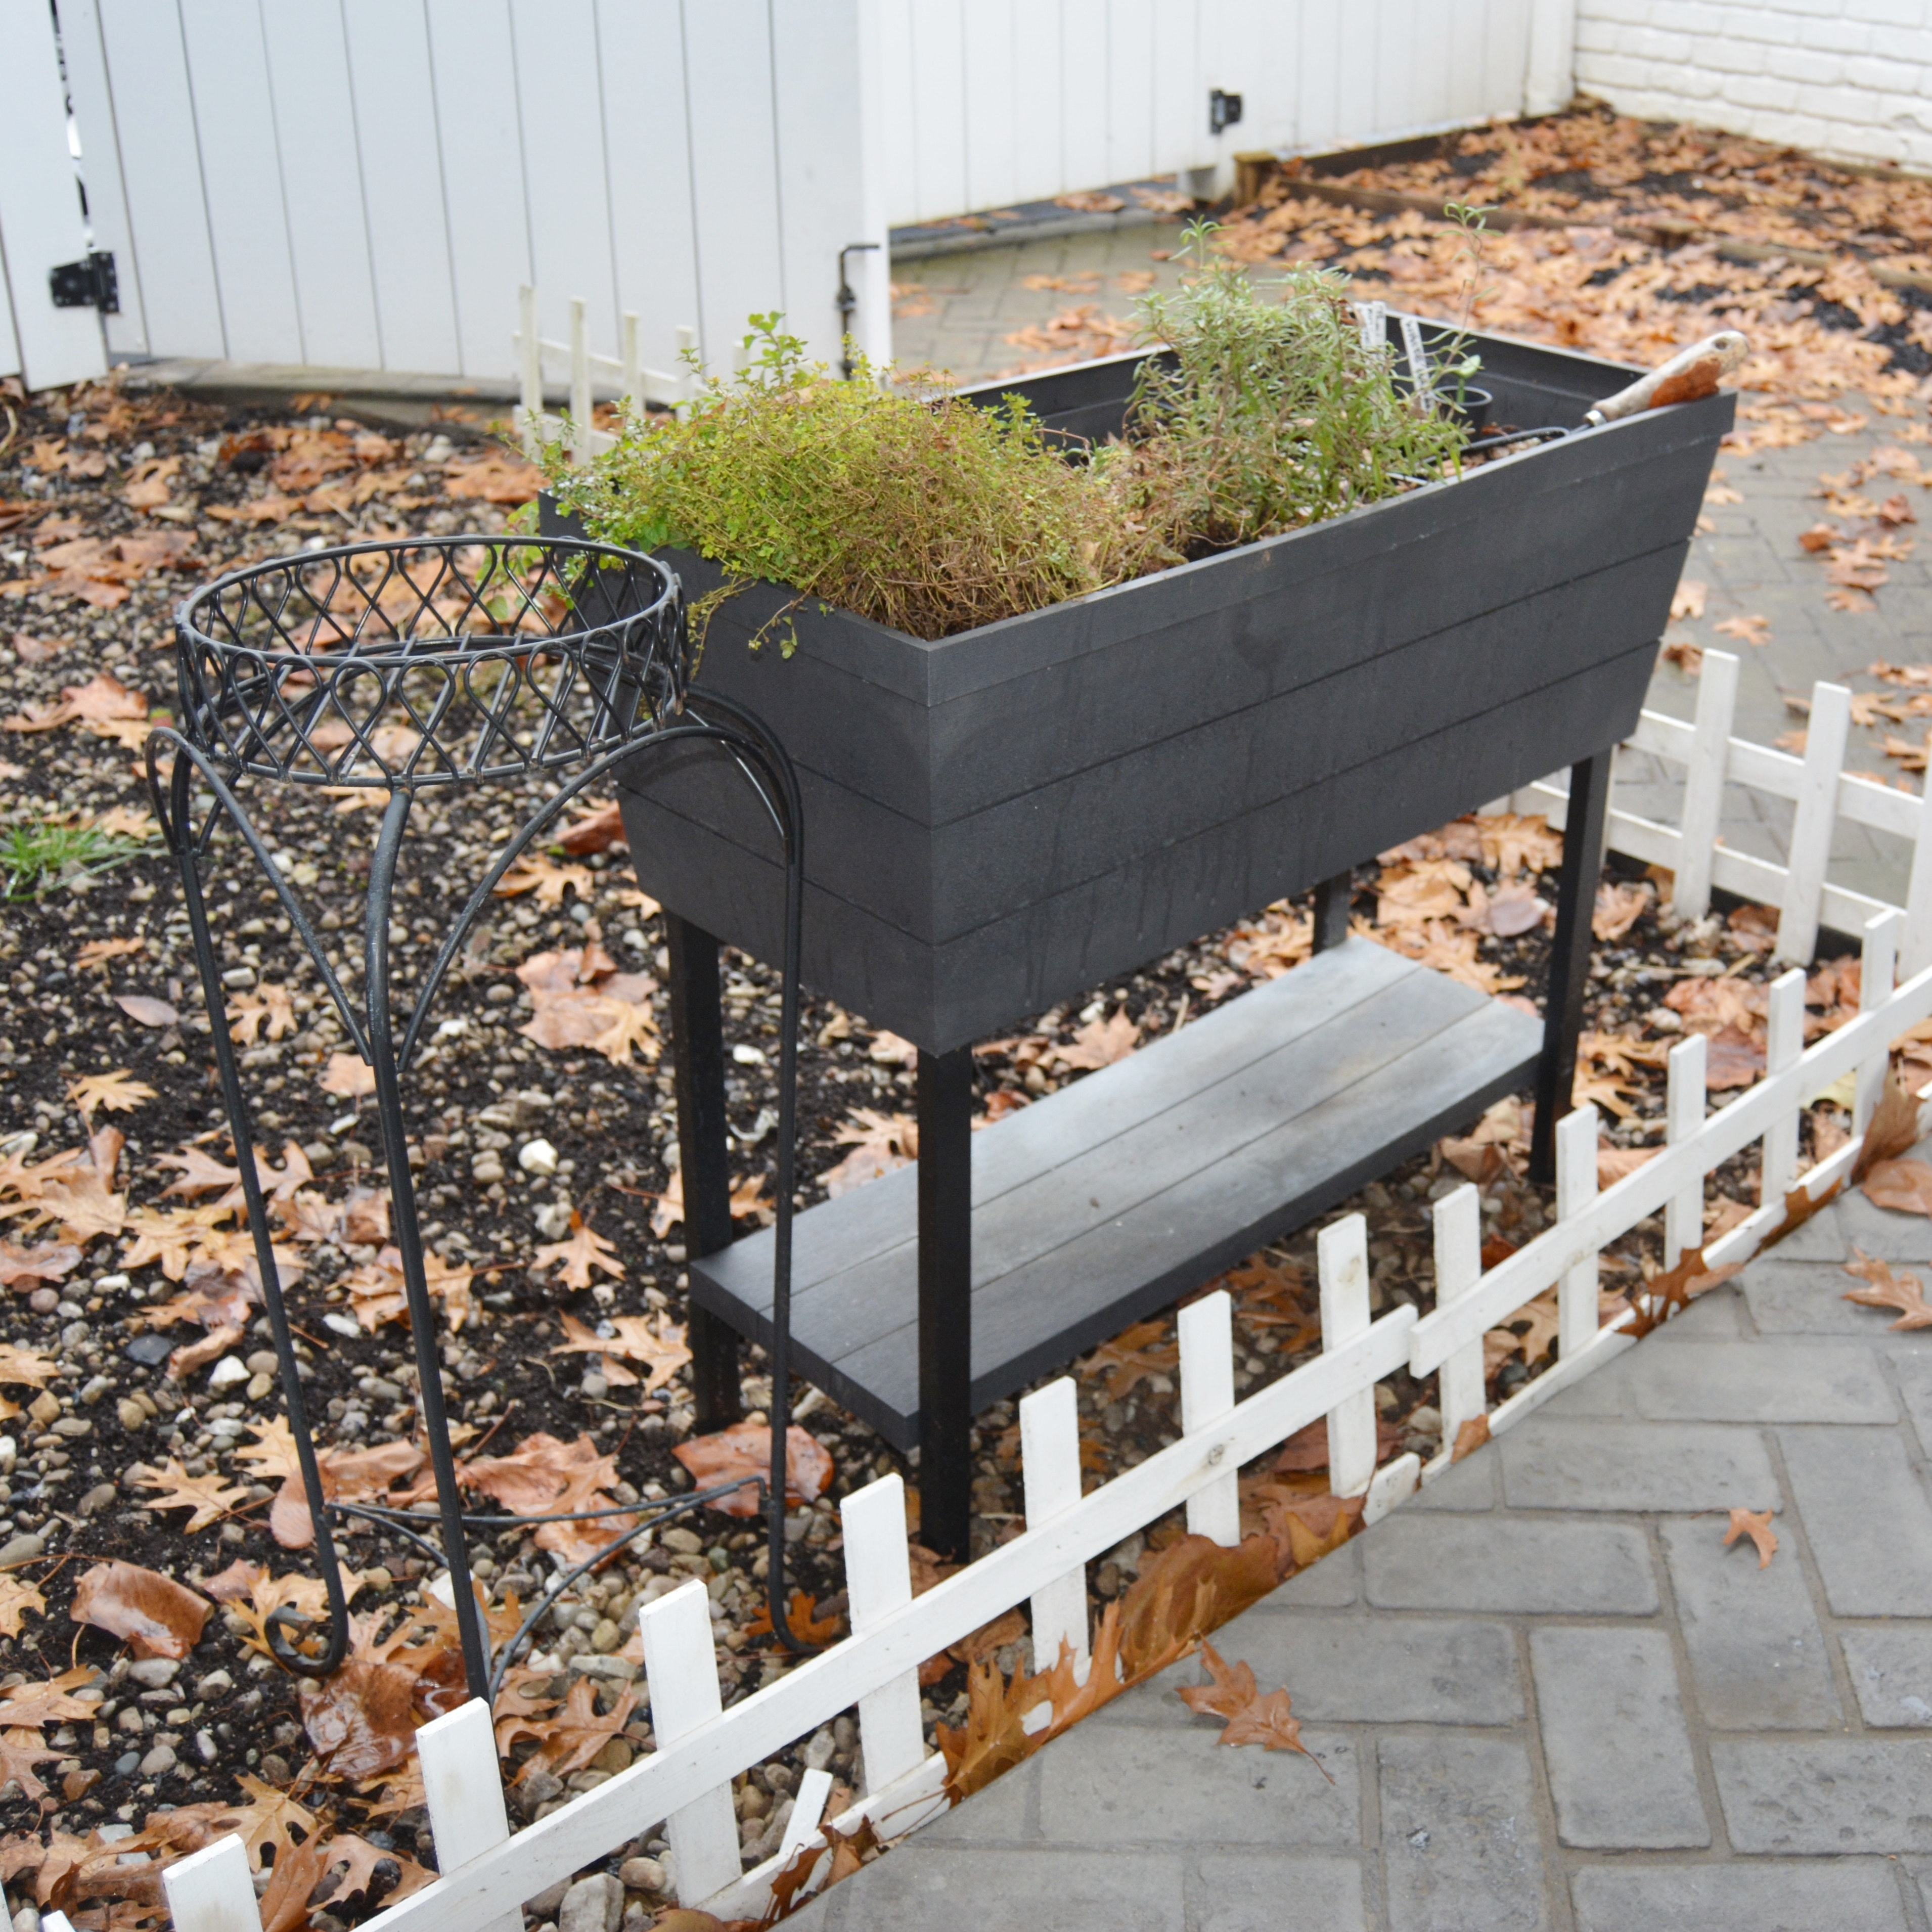 Rectangular Garden Planter and Wire Plant Stand